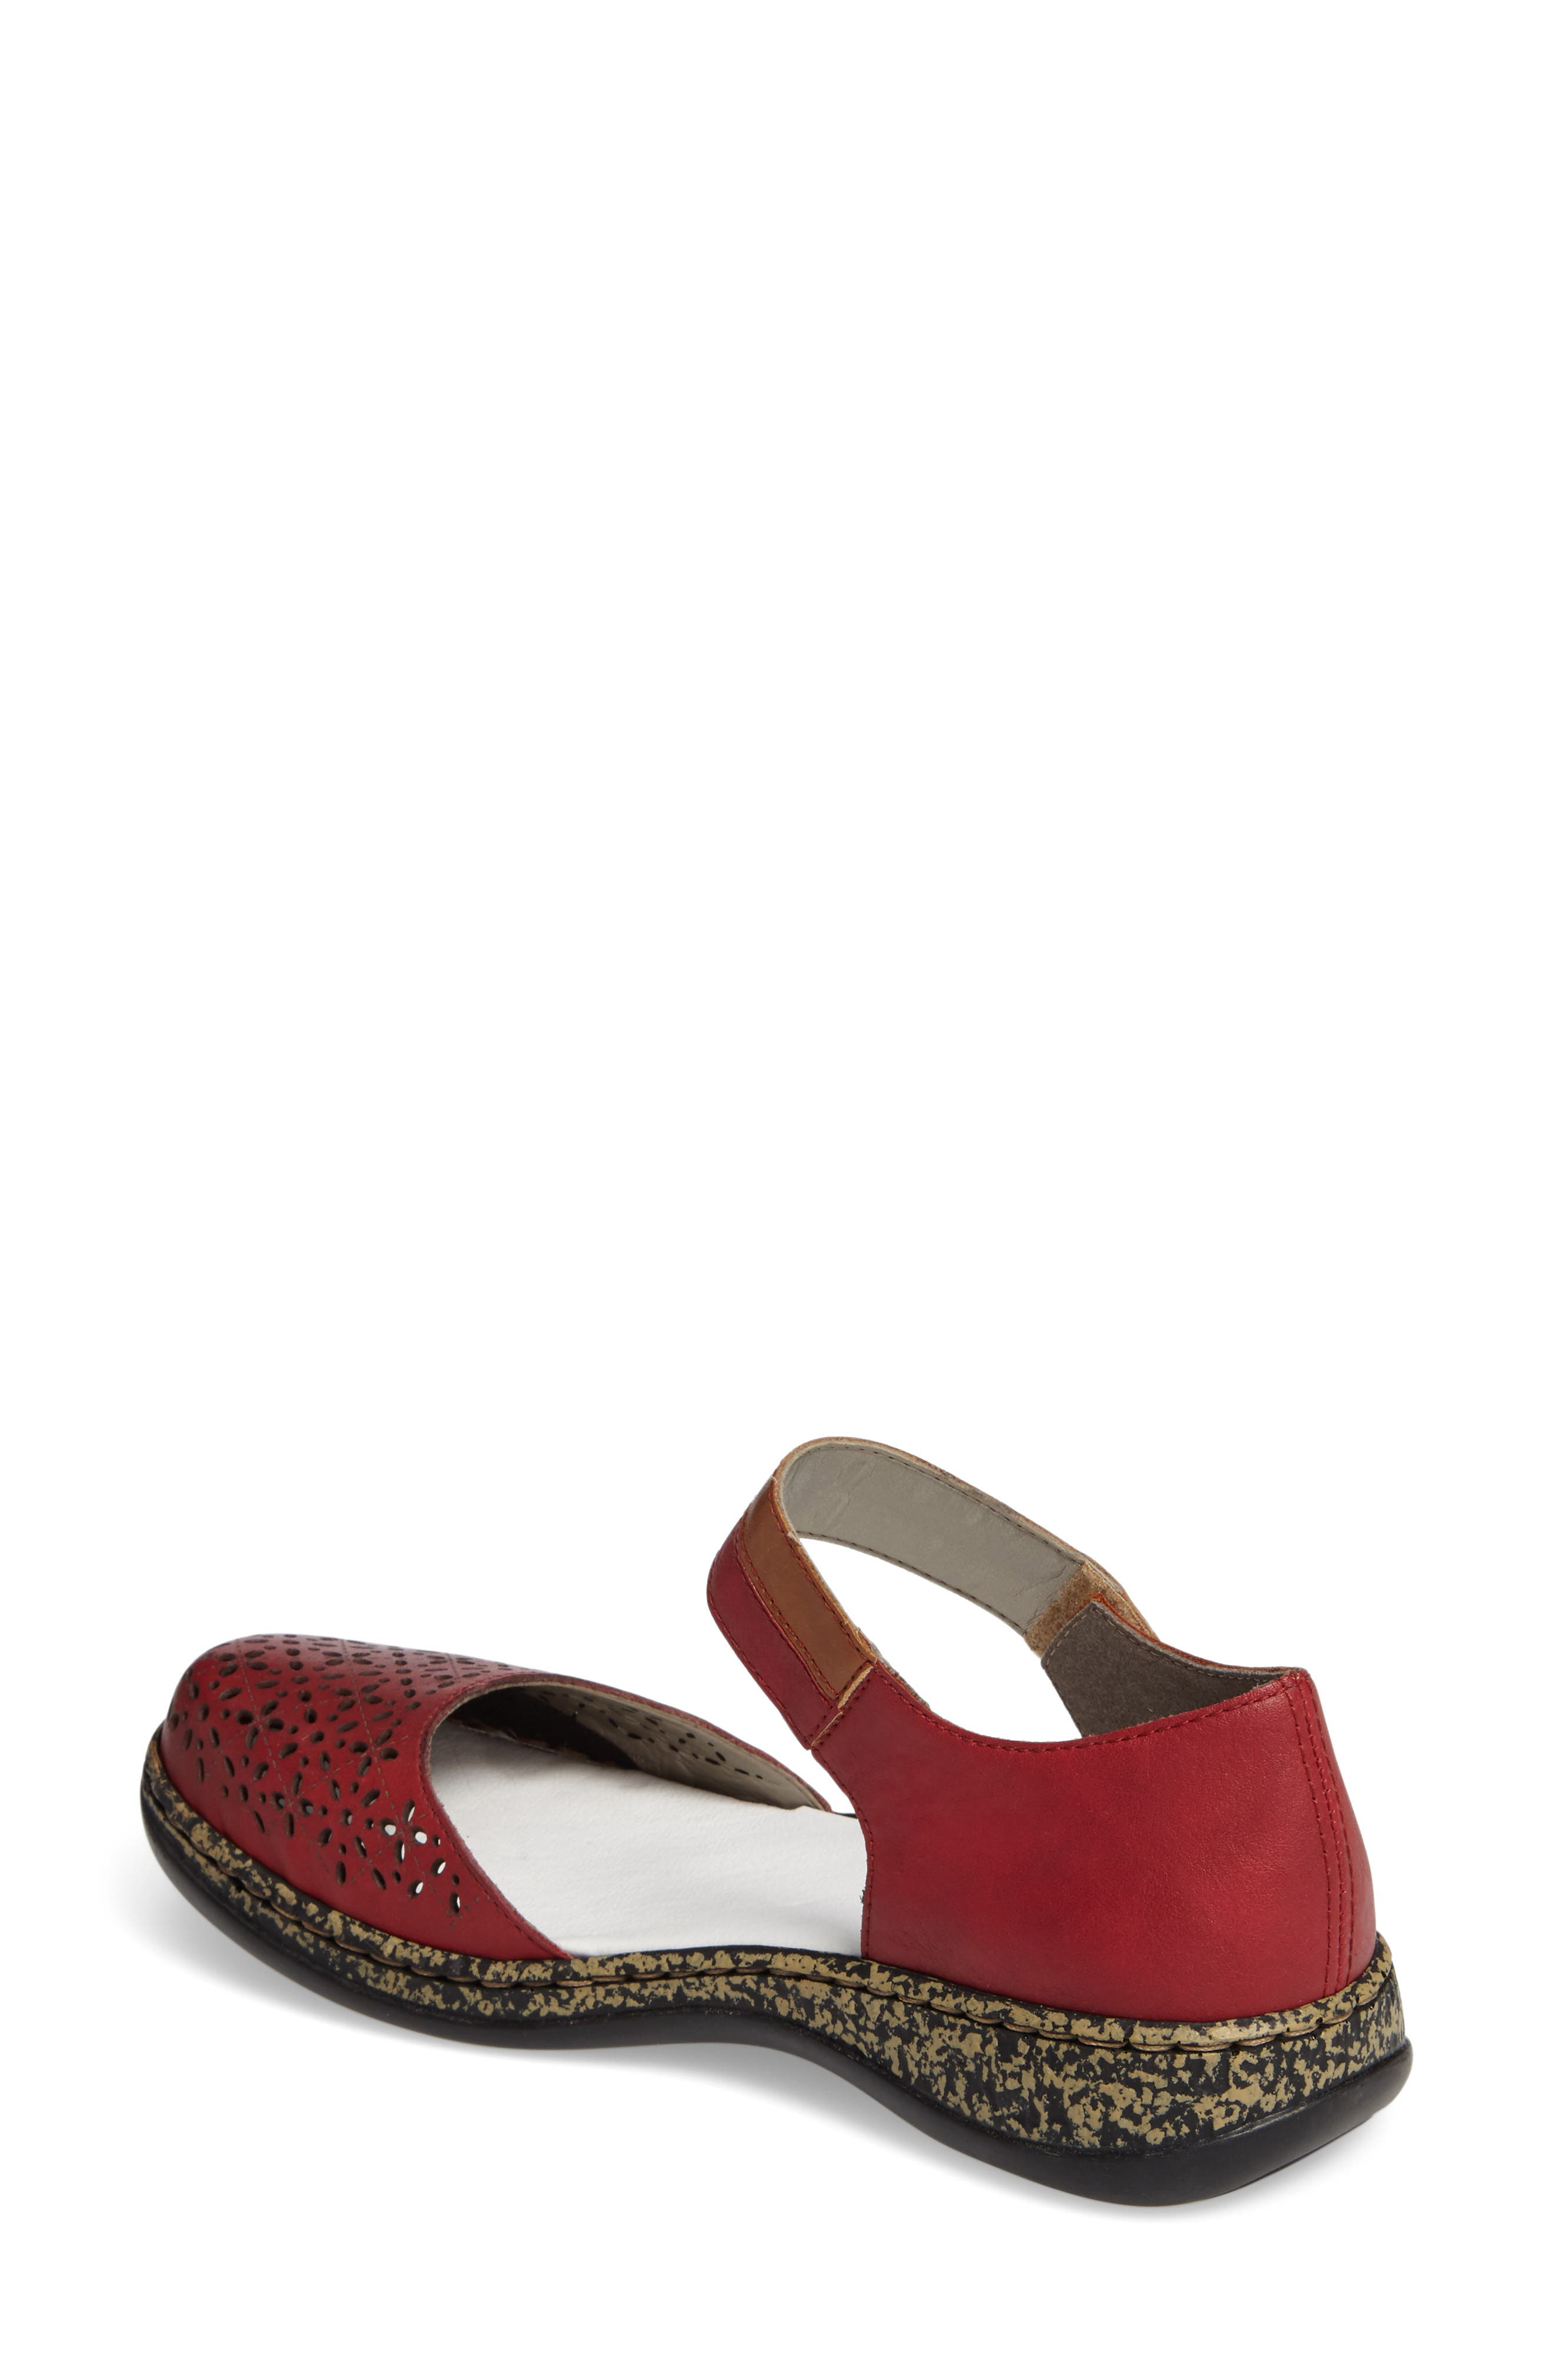 Daisy 10 Mary Jane Flat,                             Alternate thumbnail 2, color,                             ROSSO LEATHER